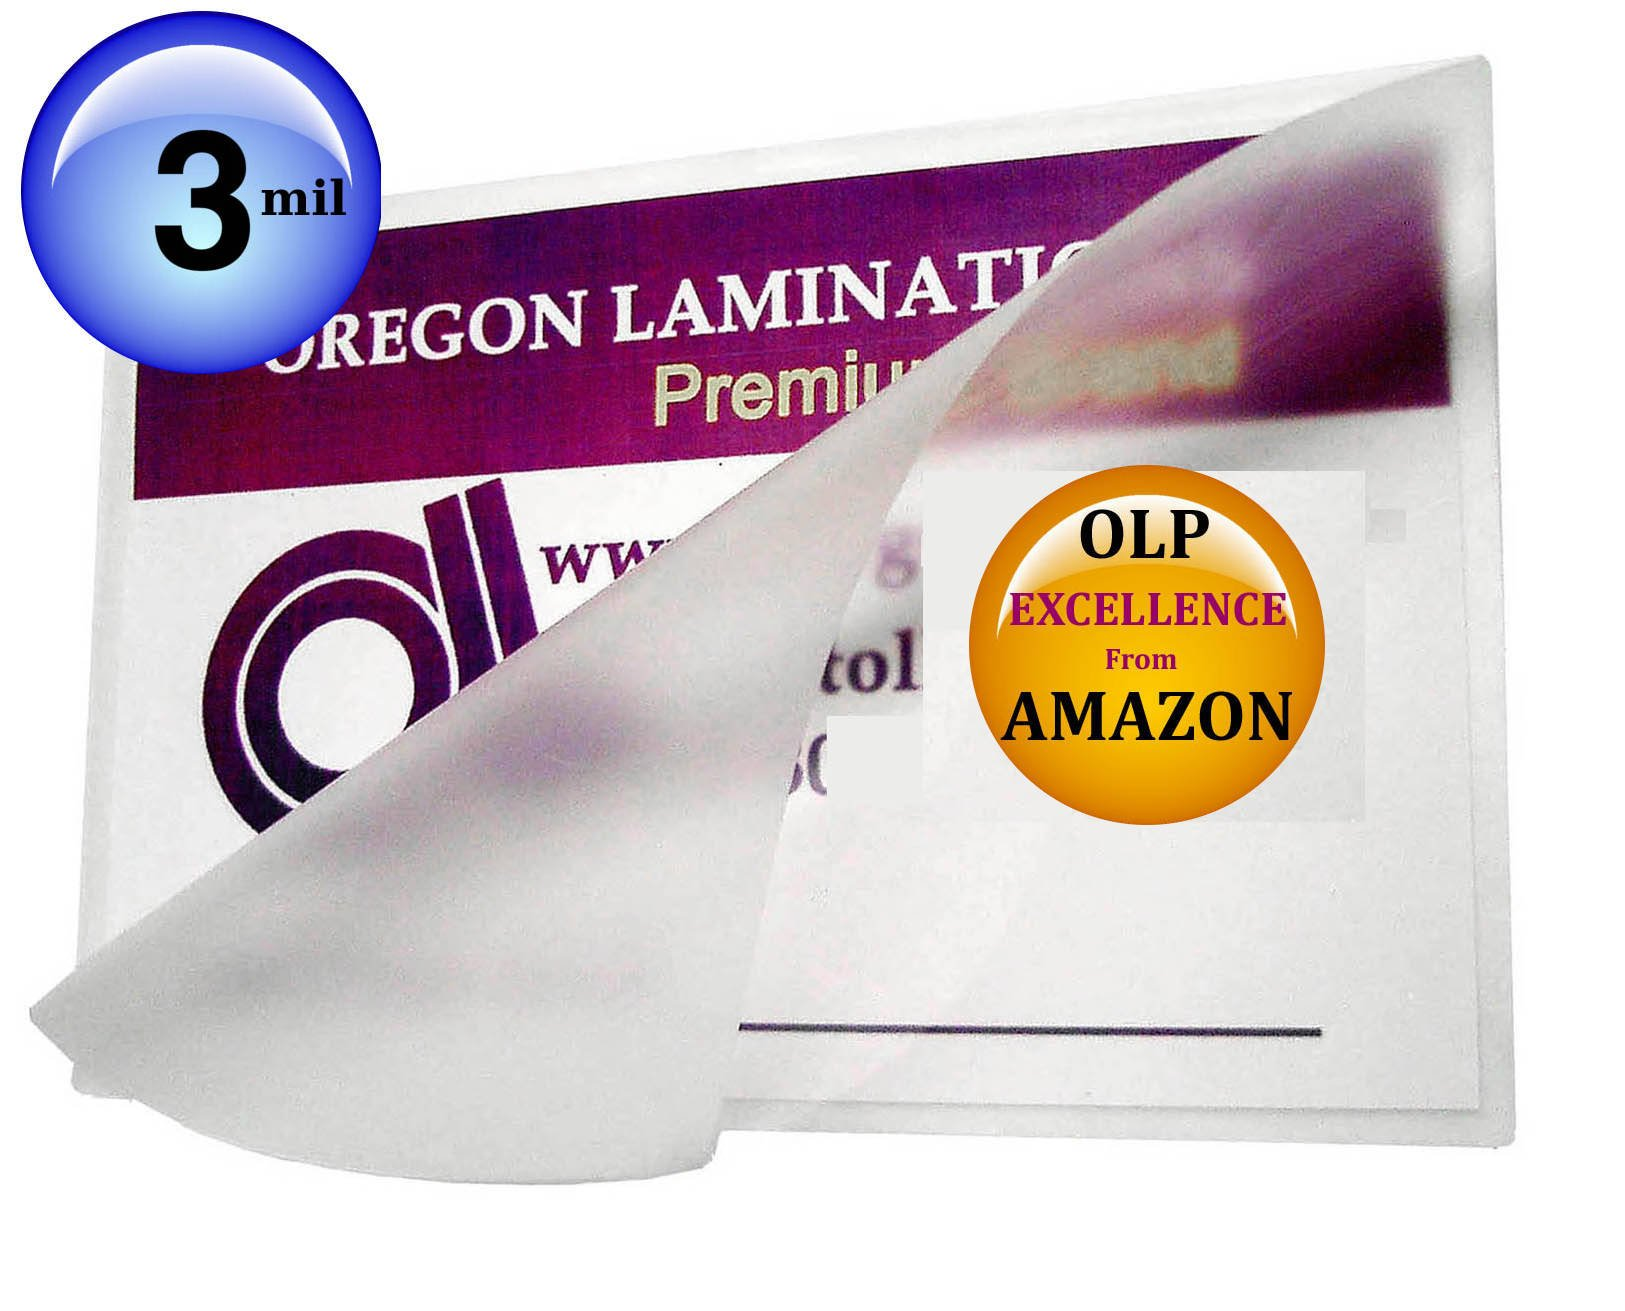 Qty 200 Double Letter Laminating Pouches 3 Mil 11-1/2 x 17-1/2 Hot Laminator Sleeves by Oregon Lamination Premium